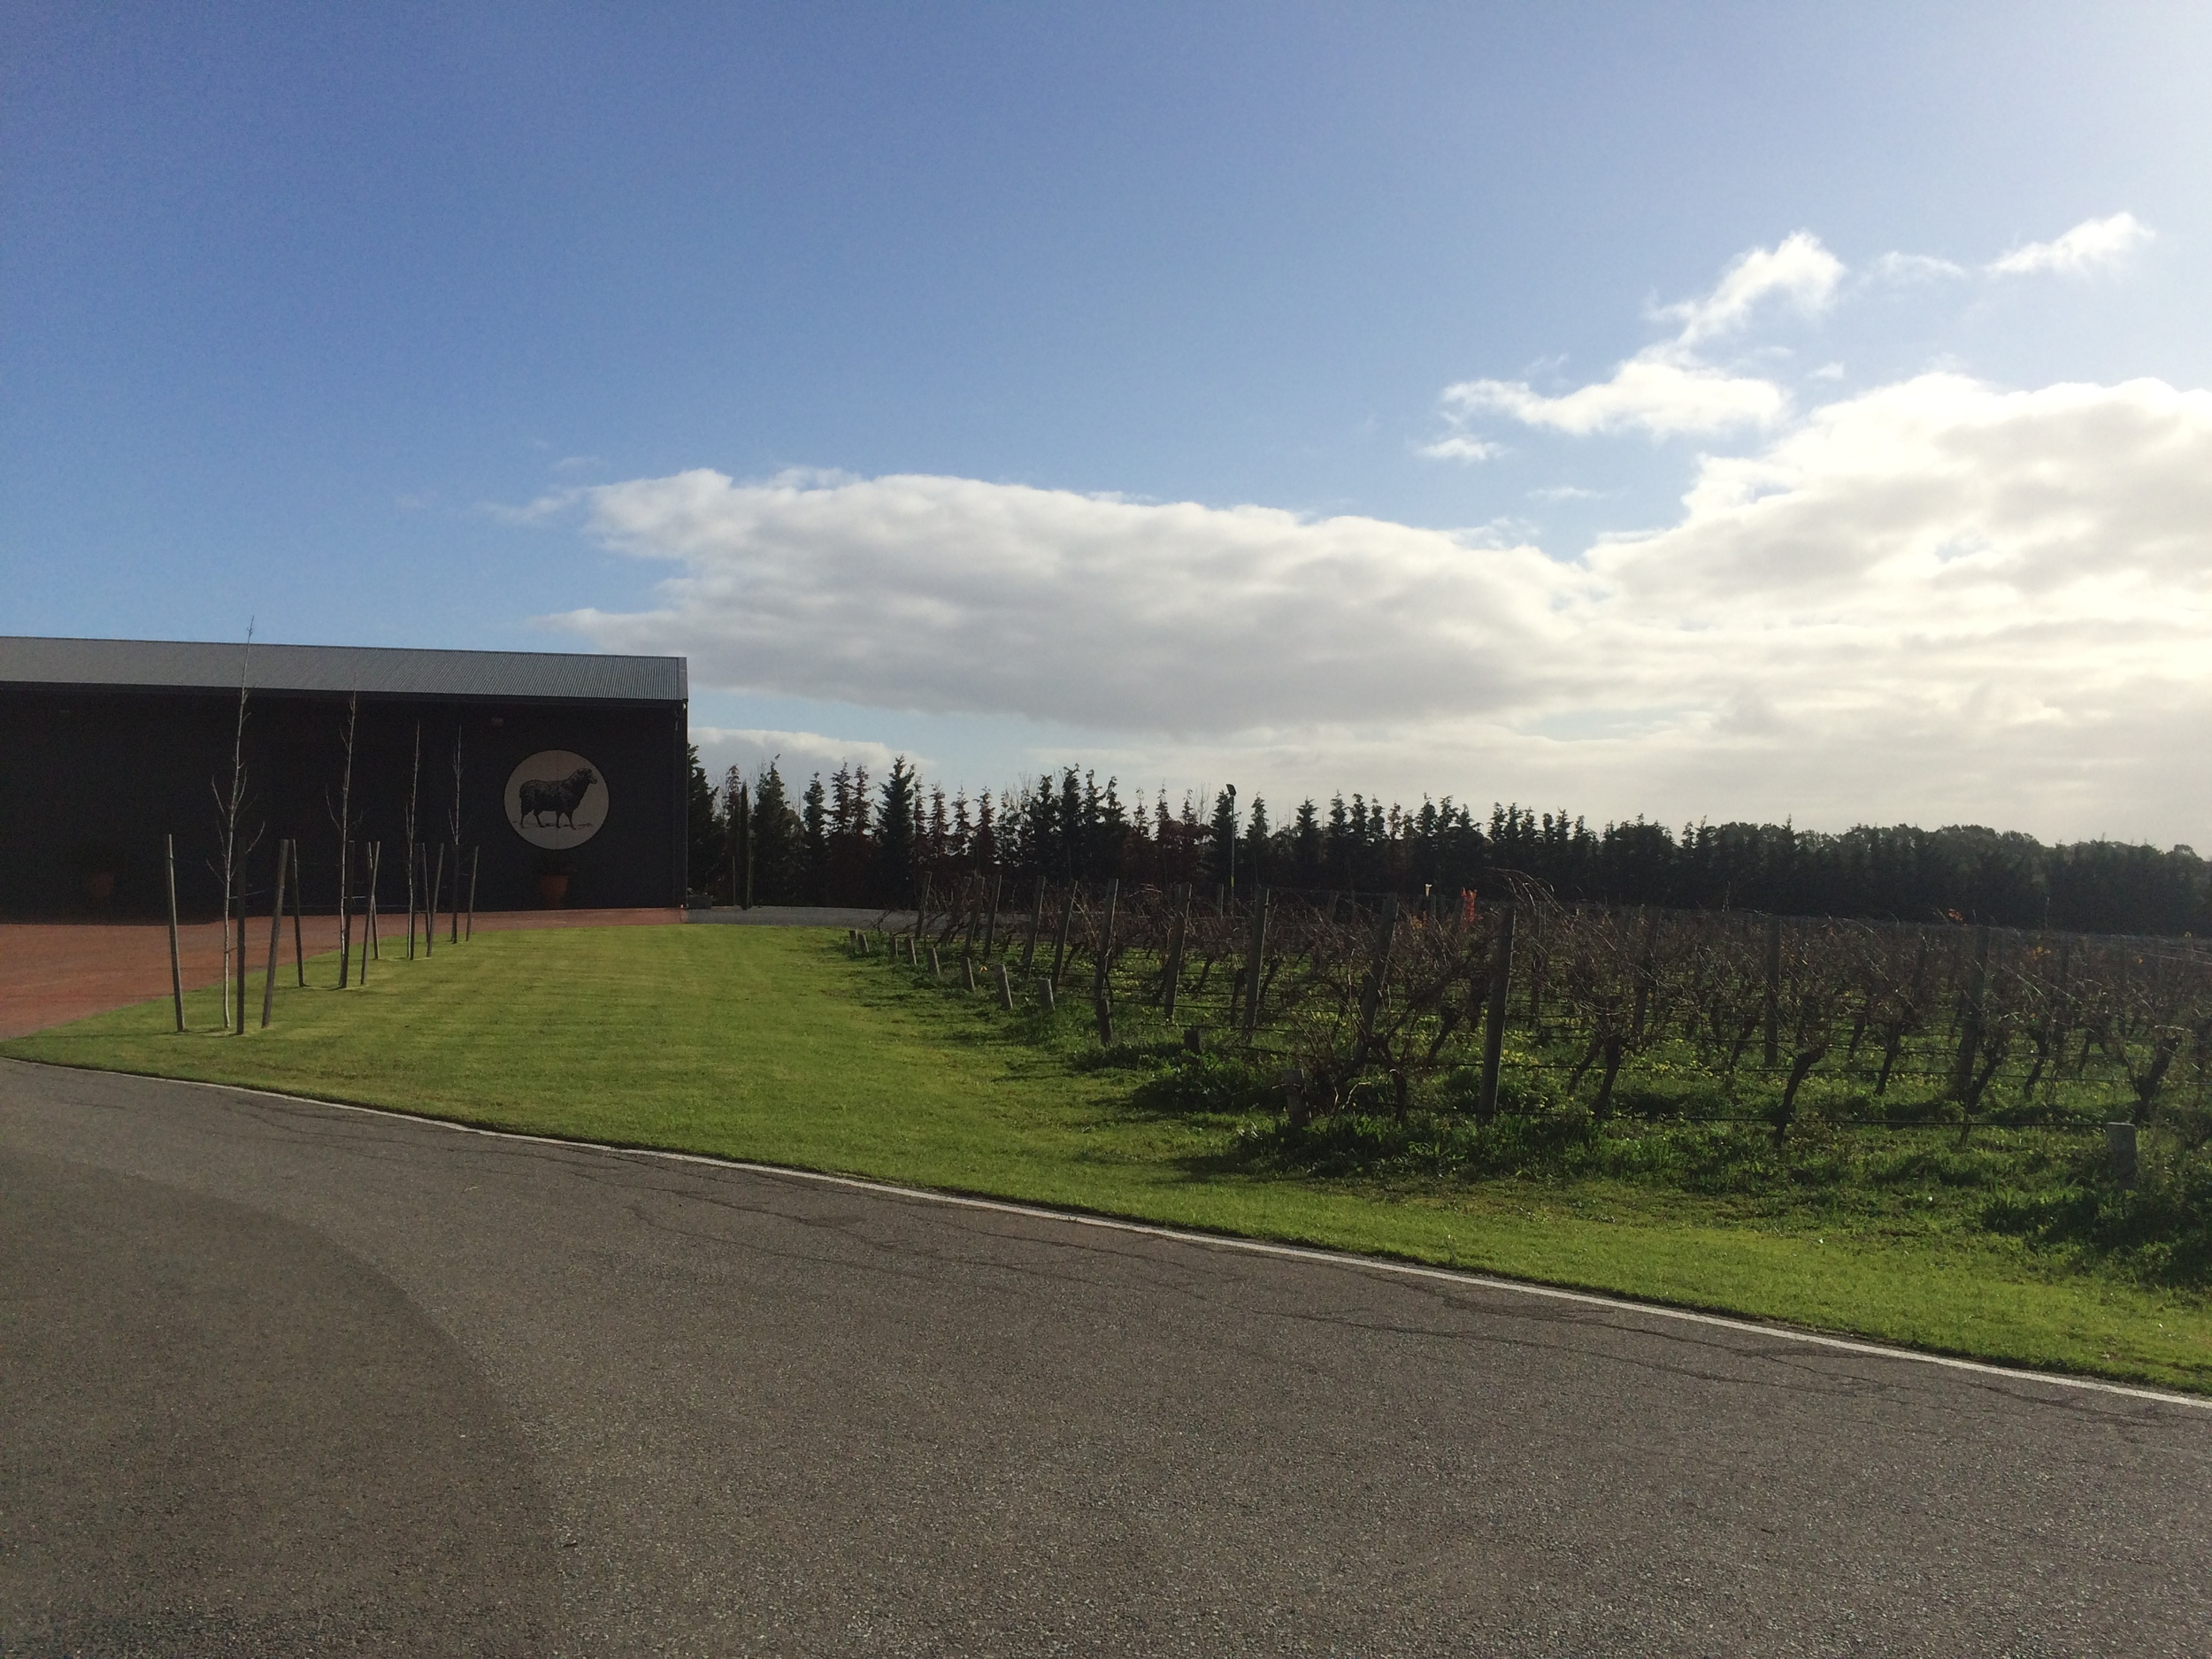 The vineyards owned by Hugh Hamilton Wines surround their shop with 360 degree views.